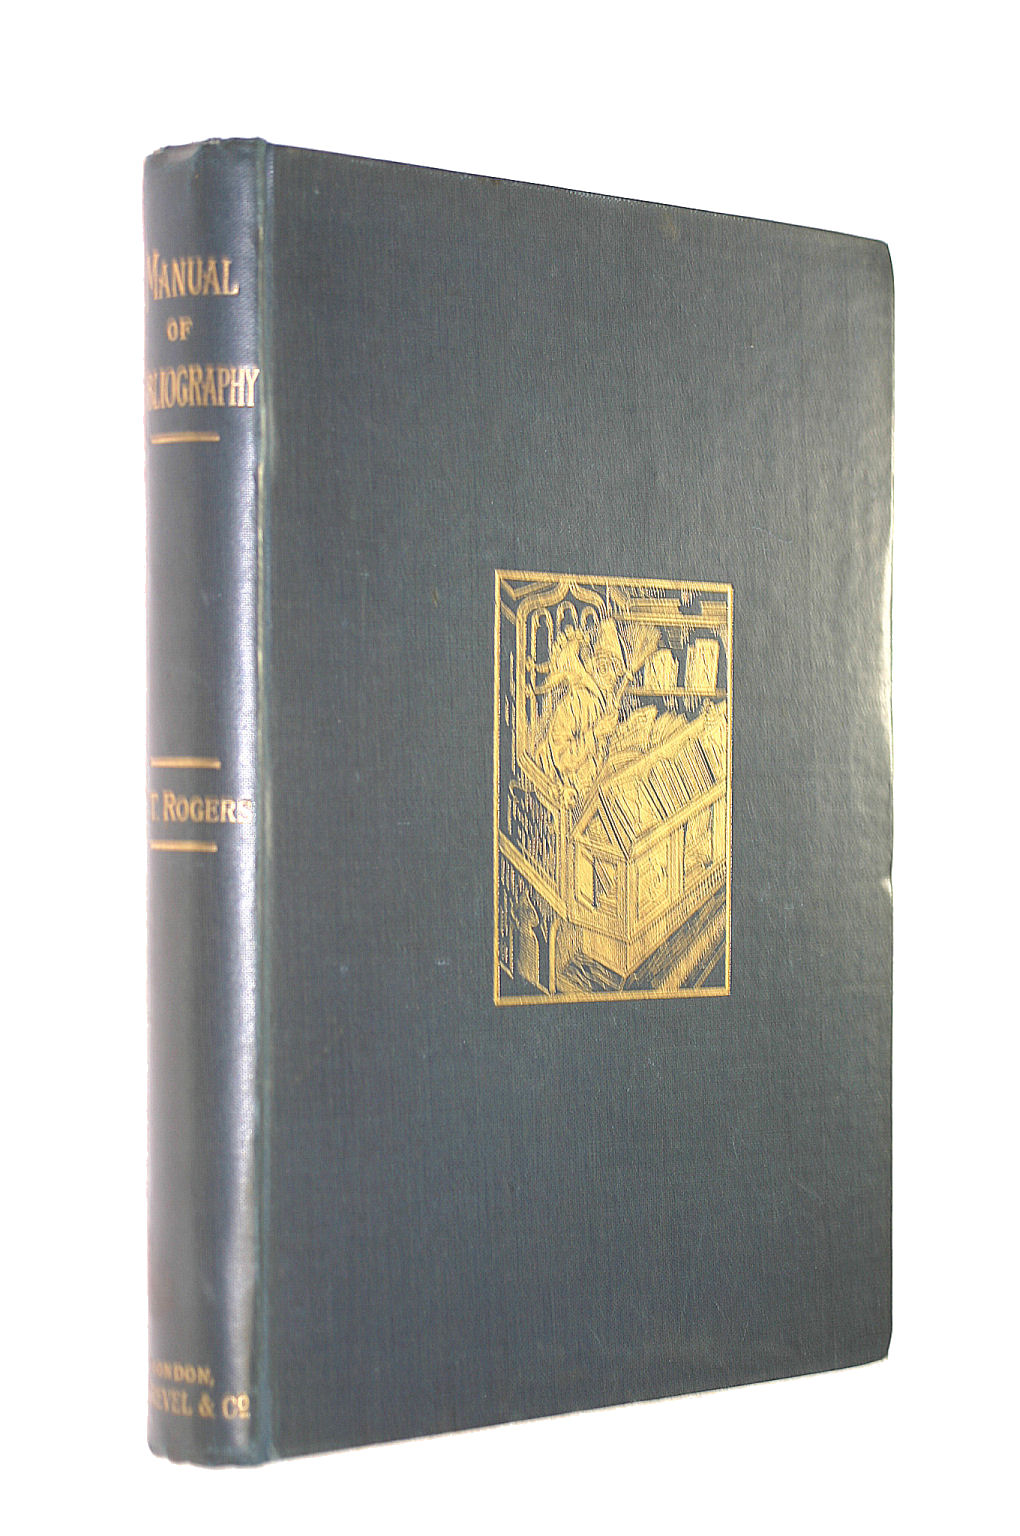 Image for A Manual of Bibliography Being An Introduction to the Knowledge of Books, Library Management, and the Art of Cataloguing